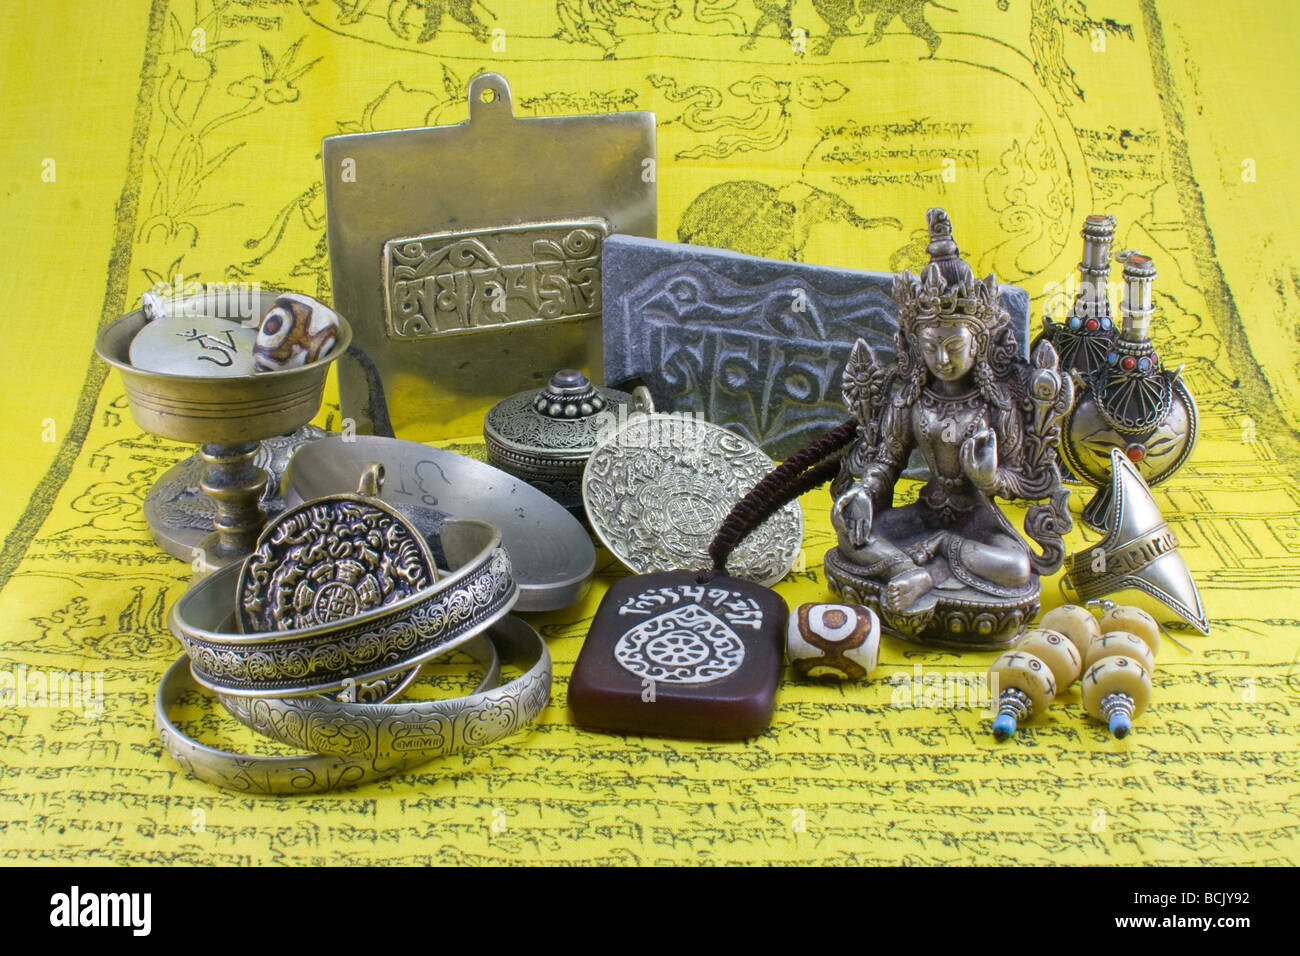 Various Tibetan artifacts and coins on a yellow cloth with Tibetan writings. - Stock Image